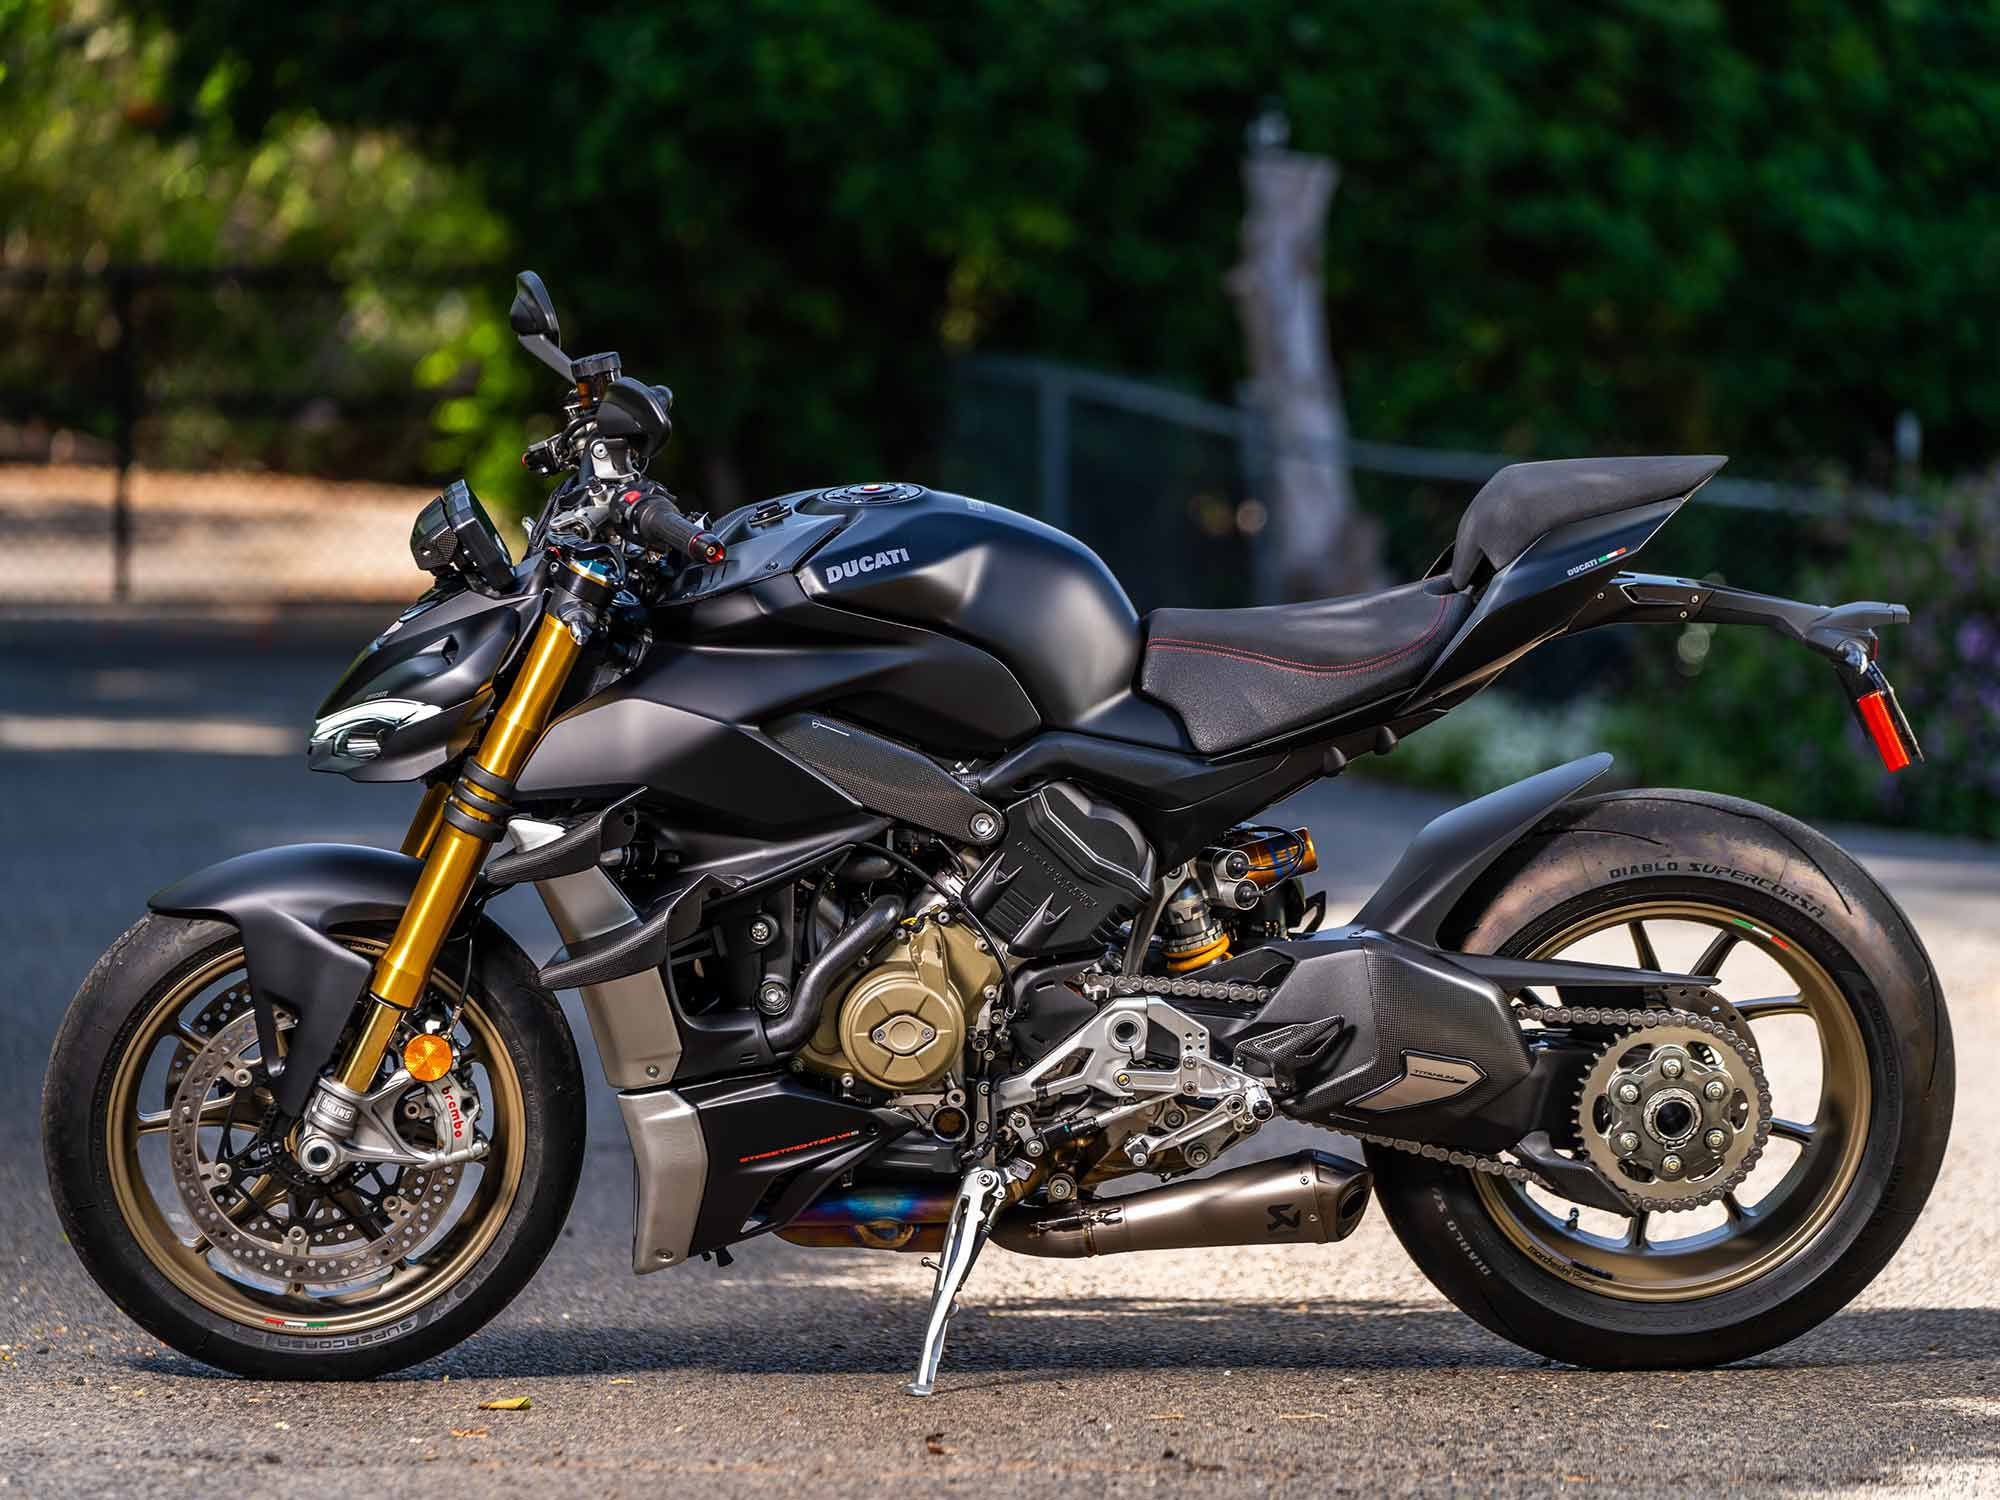 Price aside, the 2021 Ducati Streetfigther V4 S is a big deal. If you're looking for the utmost in road-going naked bike performance, this vehicle is it.